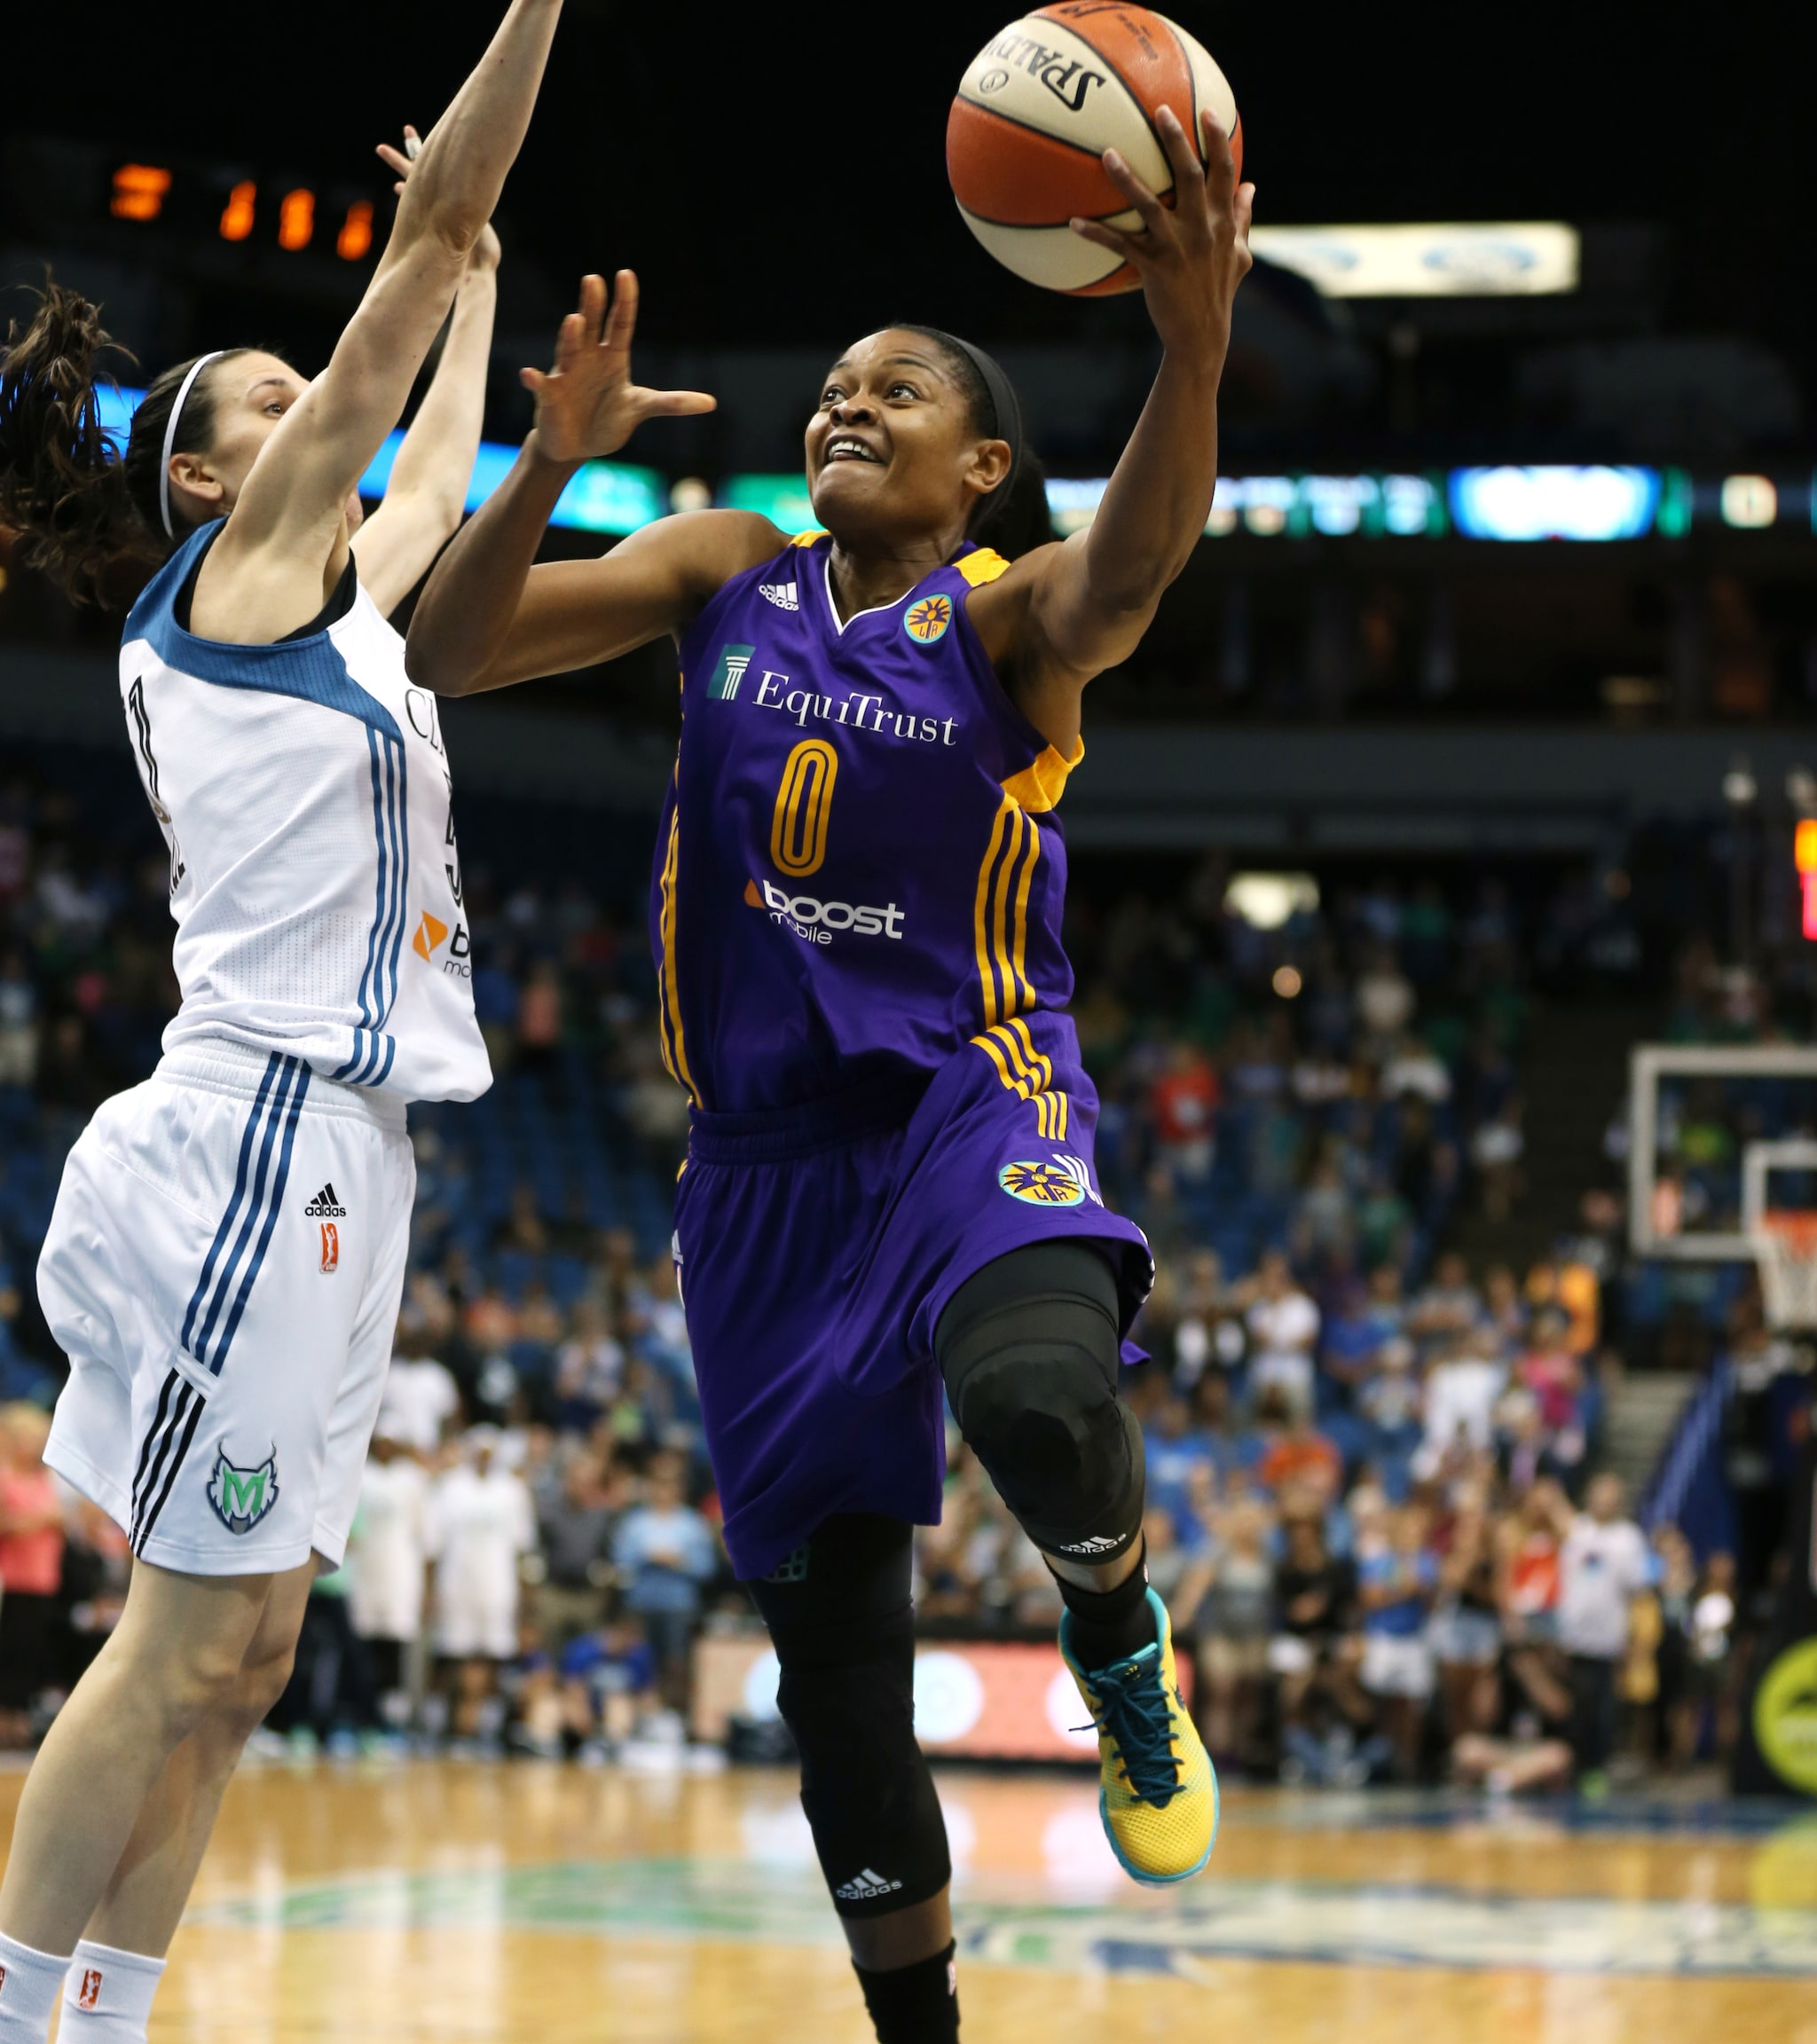 Sparks guard Alana Beard, playing in her first game back since suffering an ankle injury just two games into the season, finished with eight points on 4-of-6 shooting (66 percent) in 20 minutes of play.